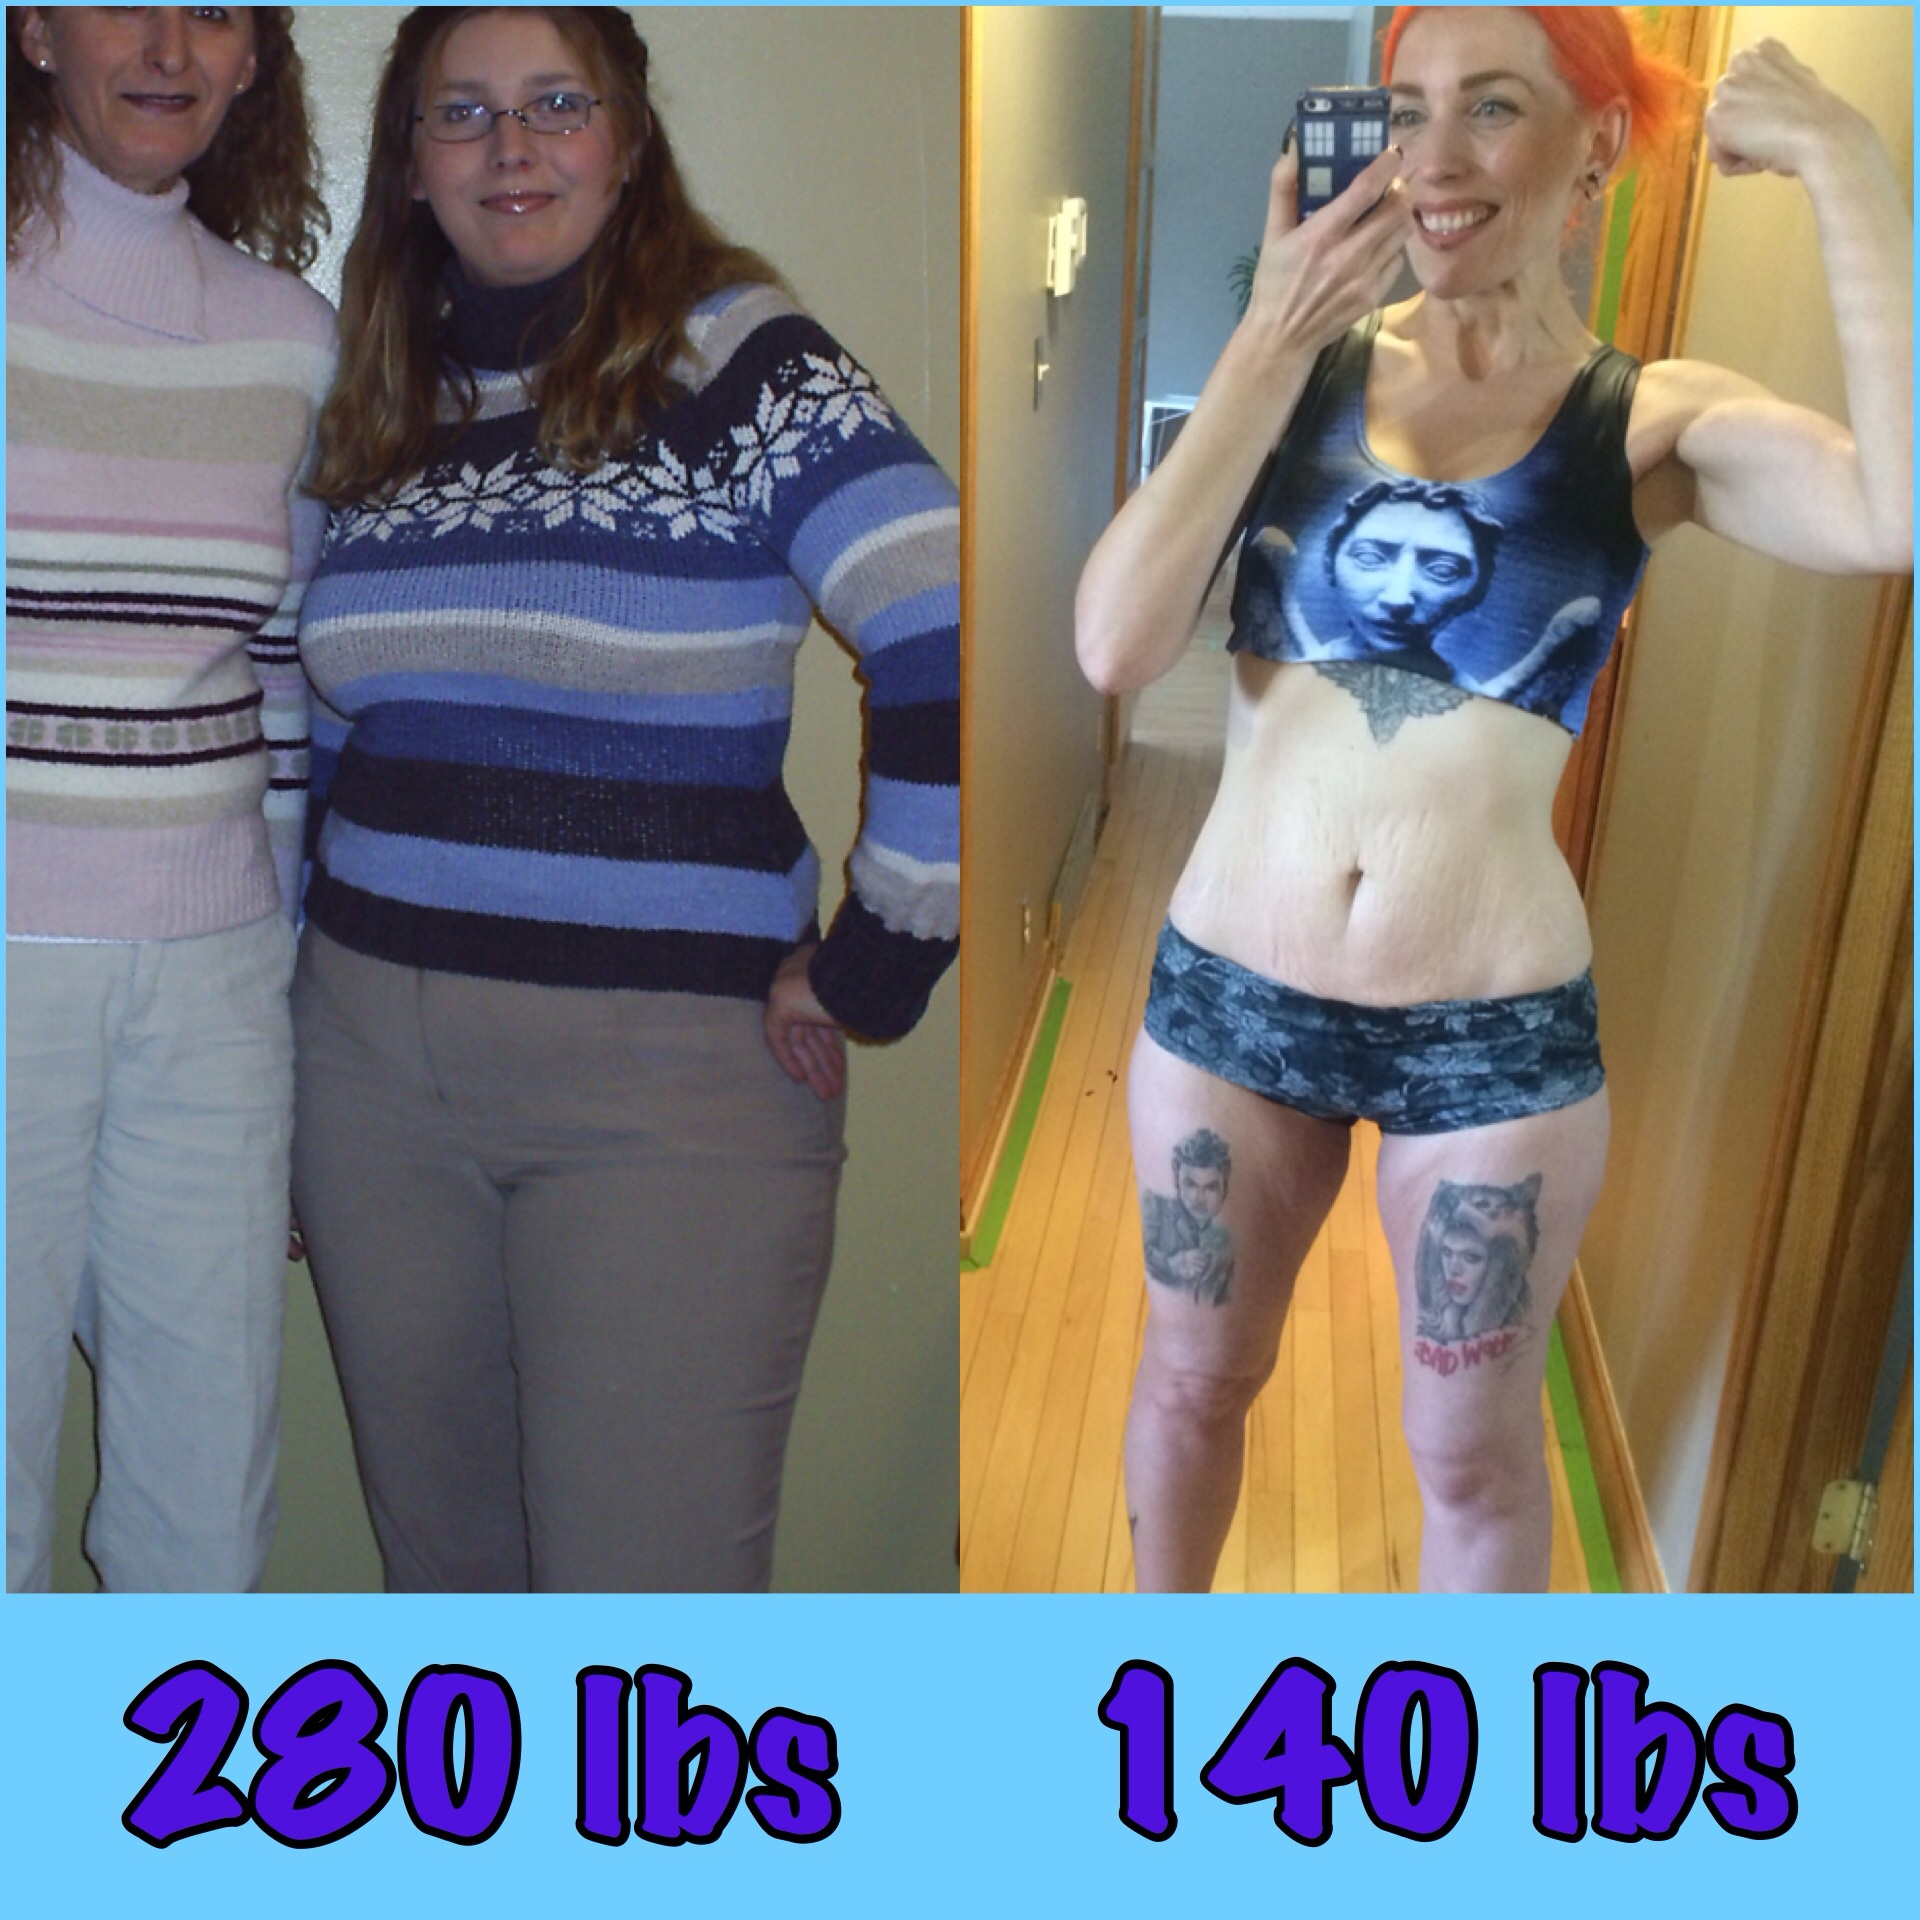 Great success story! Read before and after fitness transformation stories from women and men who hit weight loss goals and got THAT BODY with training and meal prep. Find inspiration, motivation, and workout tips | 140 Pounds Lost: Keepin it REAL!